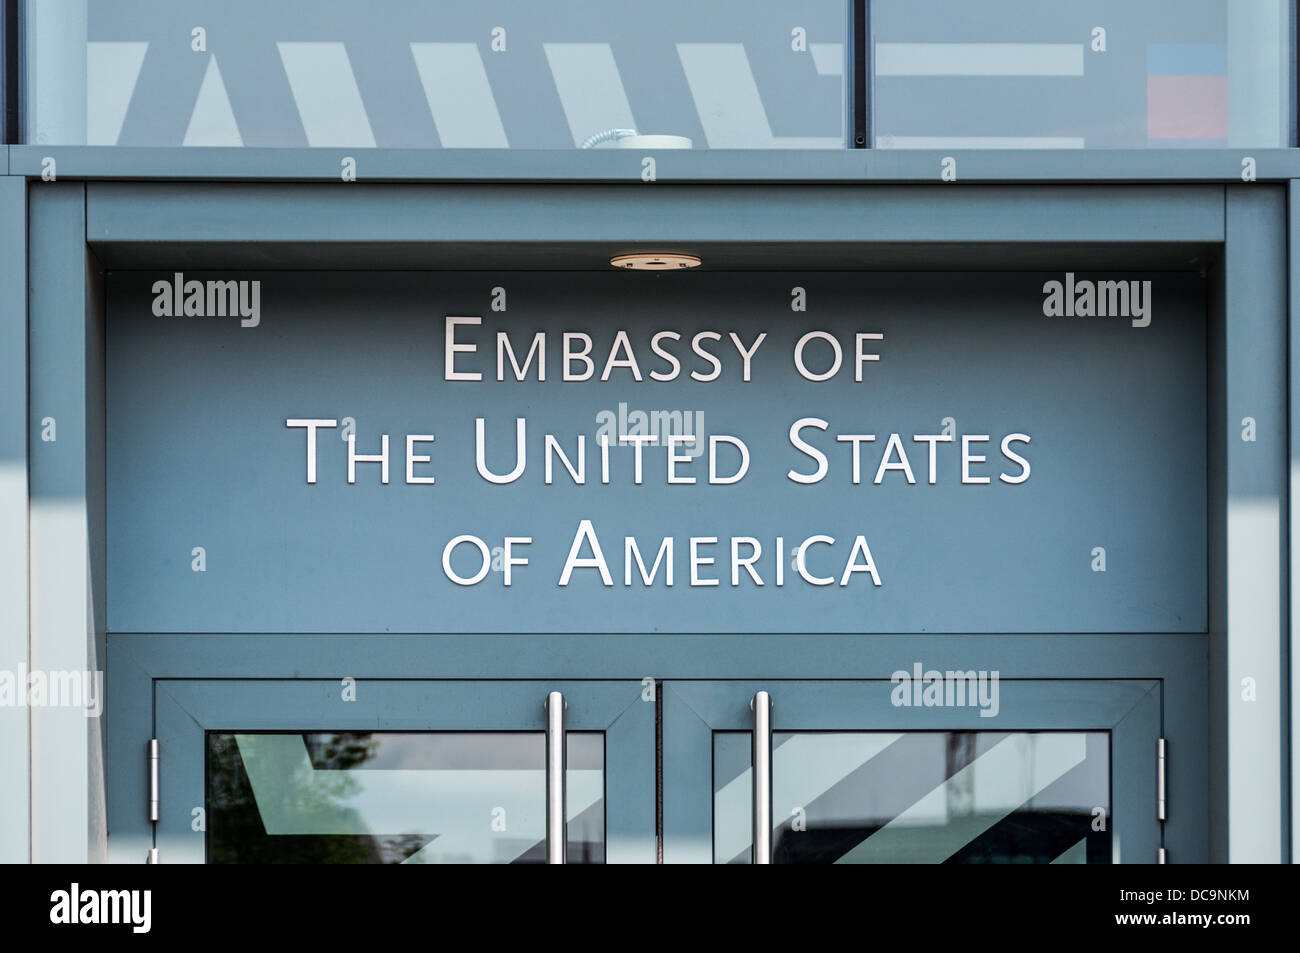 Entrance sign of the Embassy of the United States of America in Berlin, Germany Stock Photo